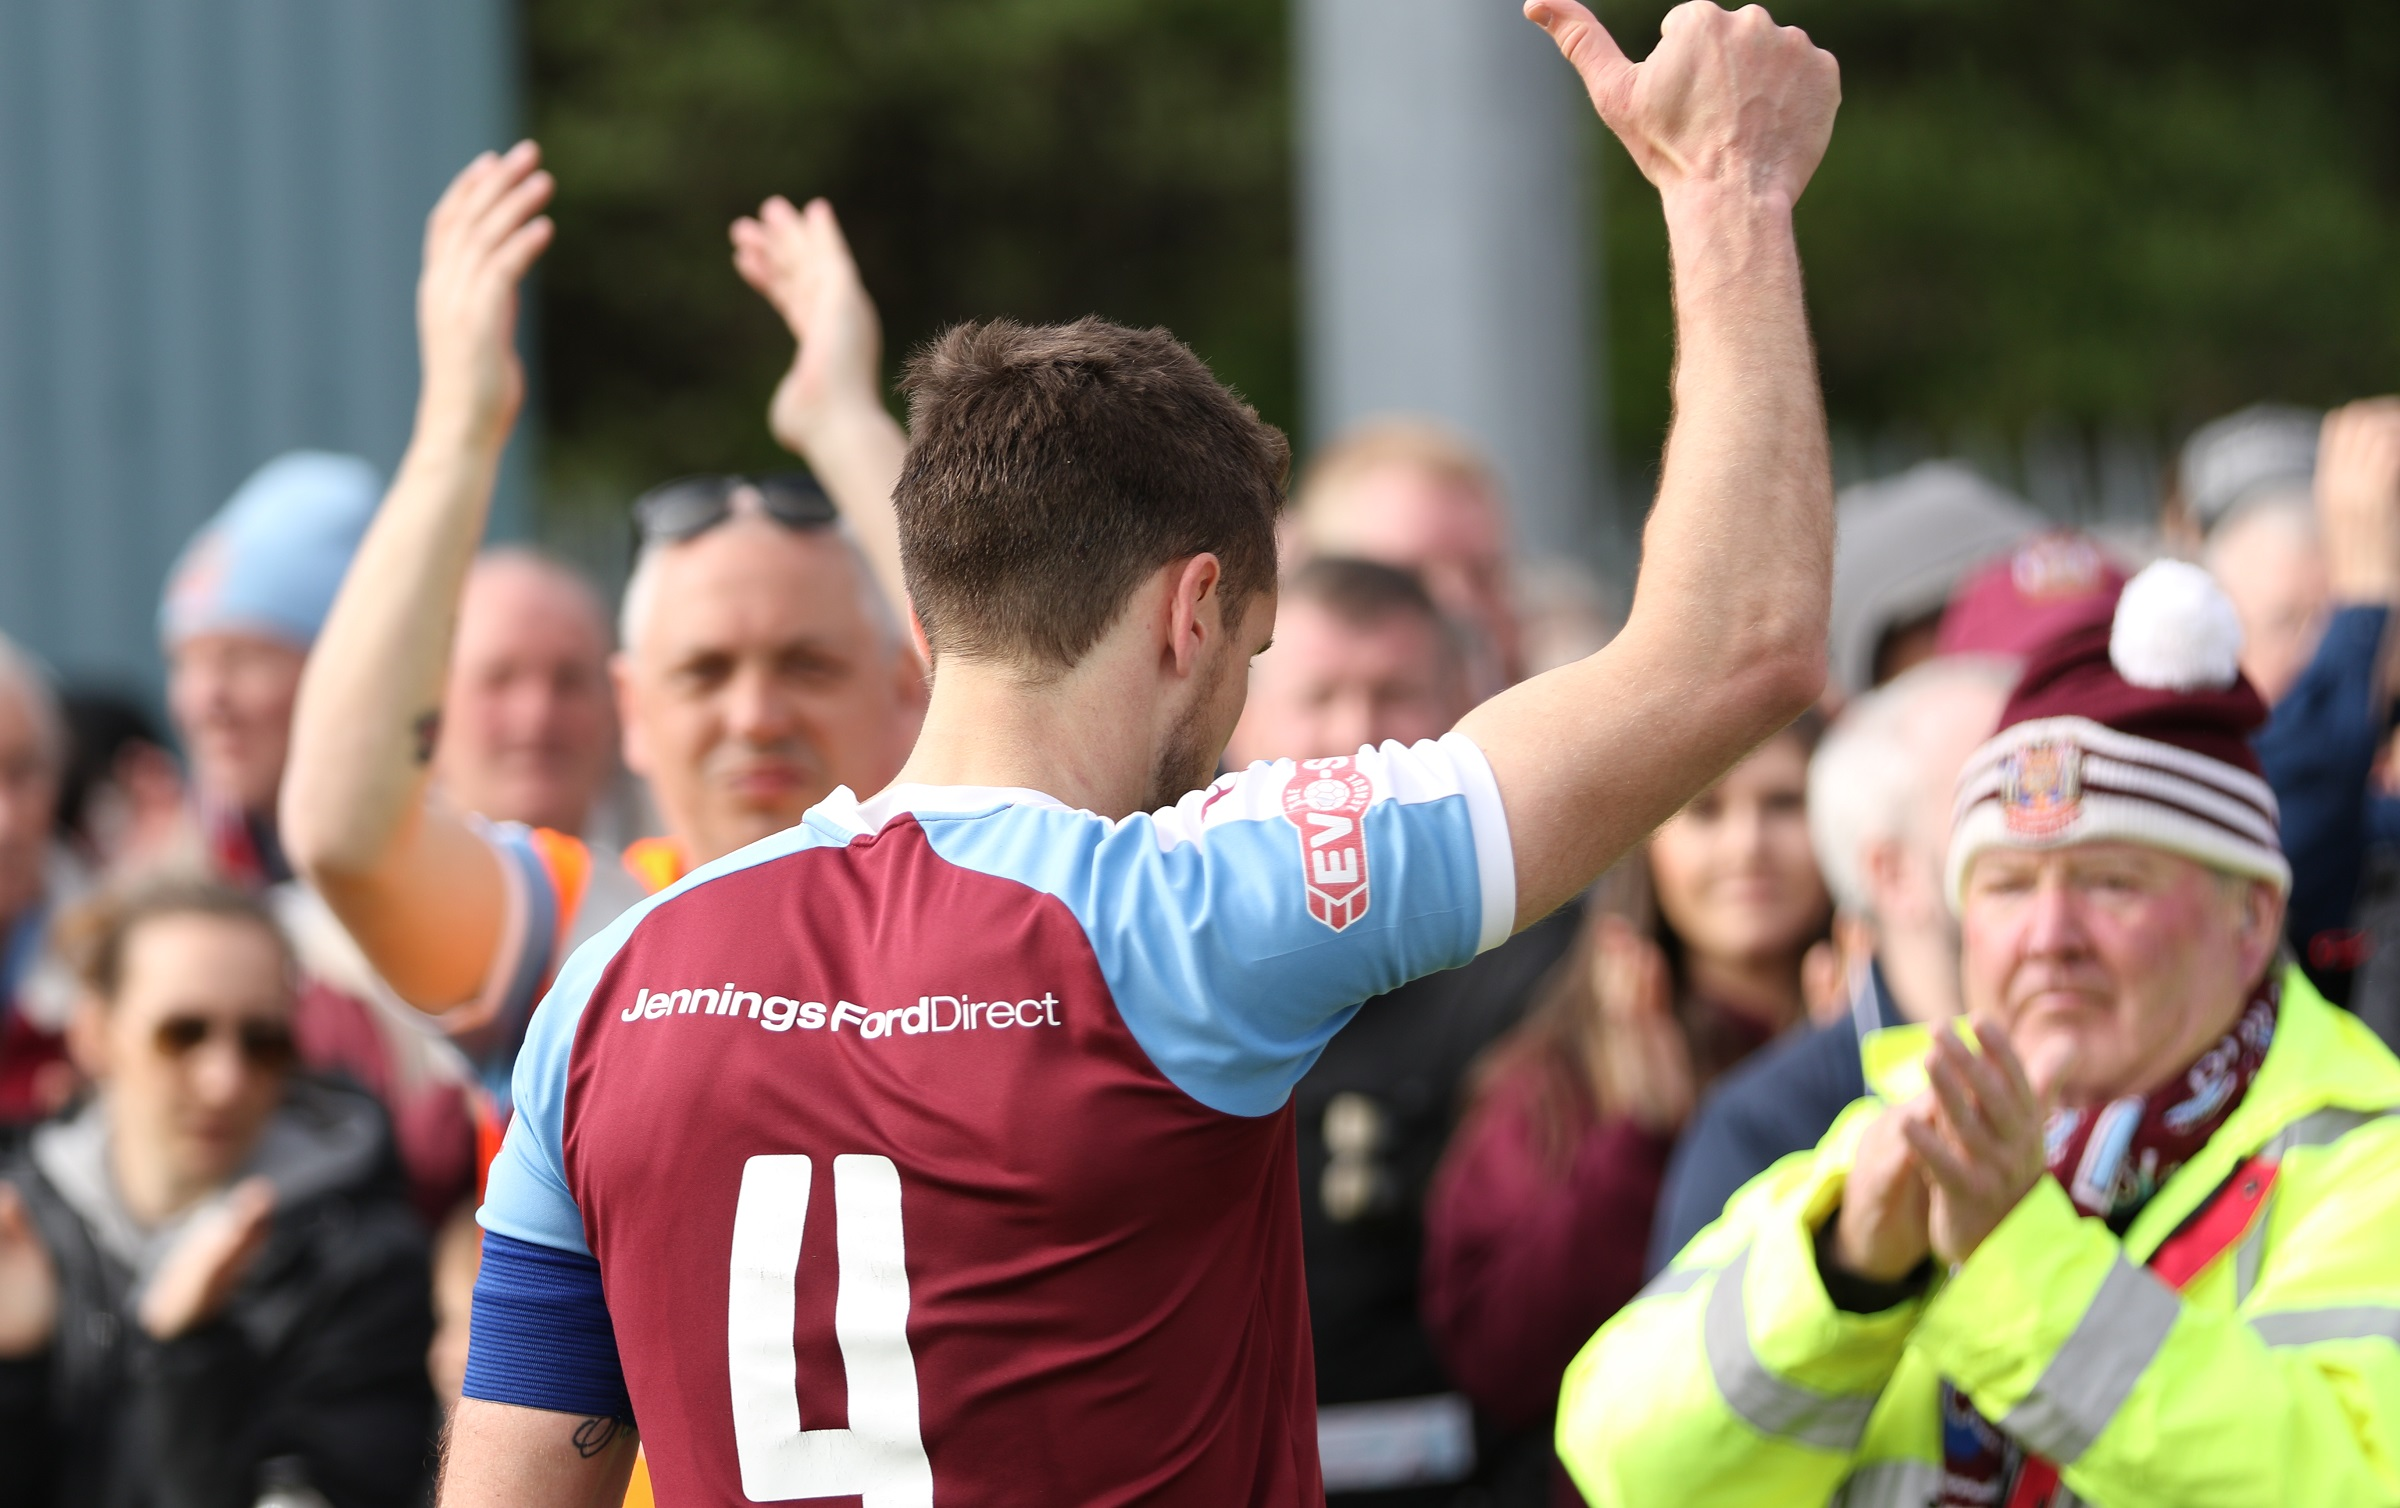 South Shields 1-2 Warrington Town: Mariners suffer play-off heartbreak